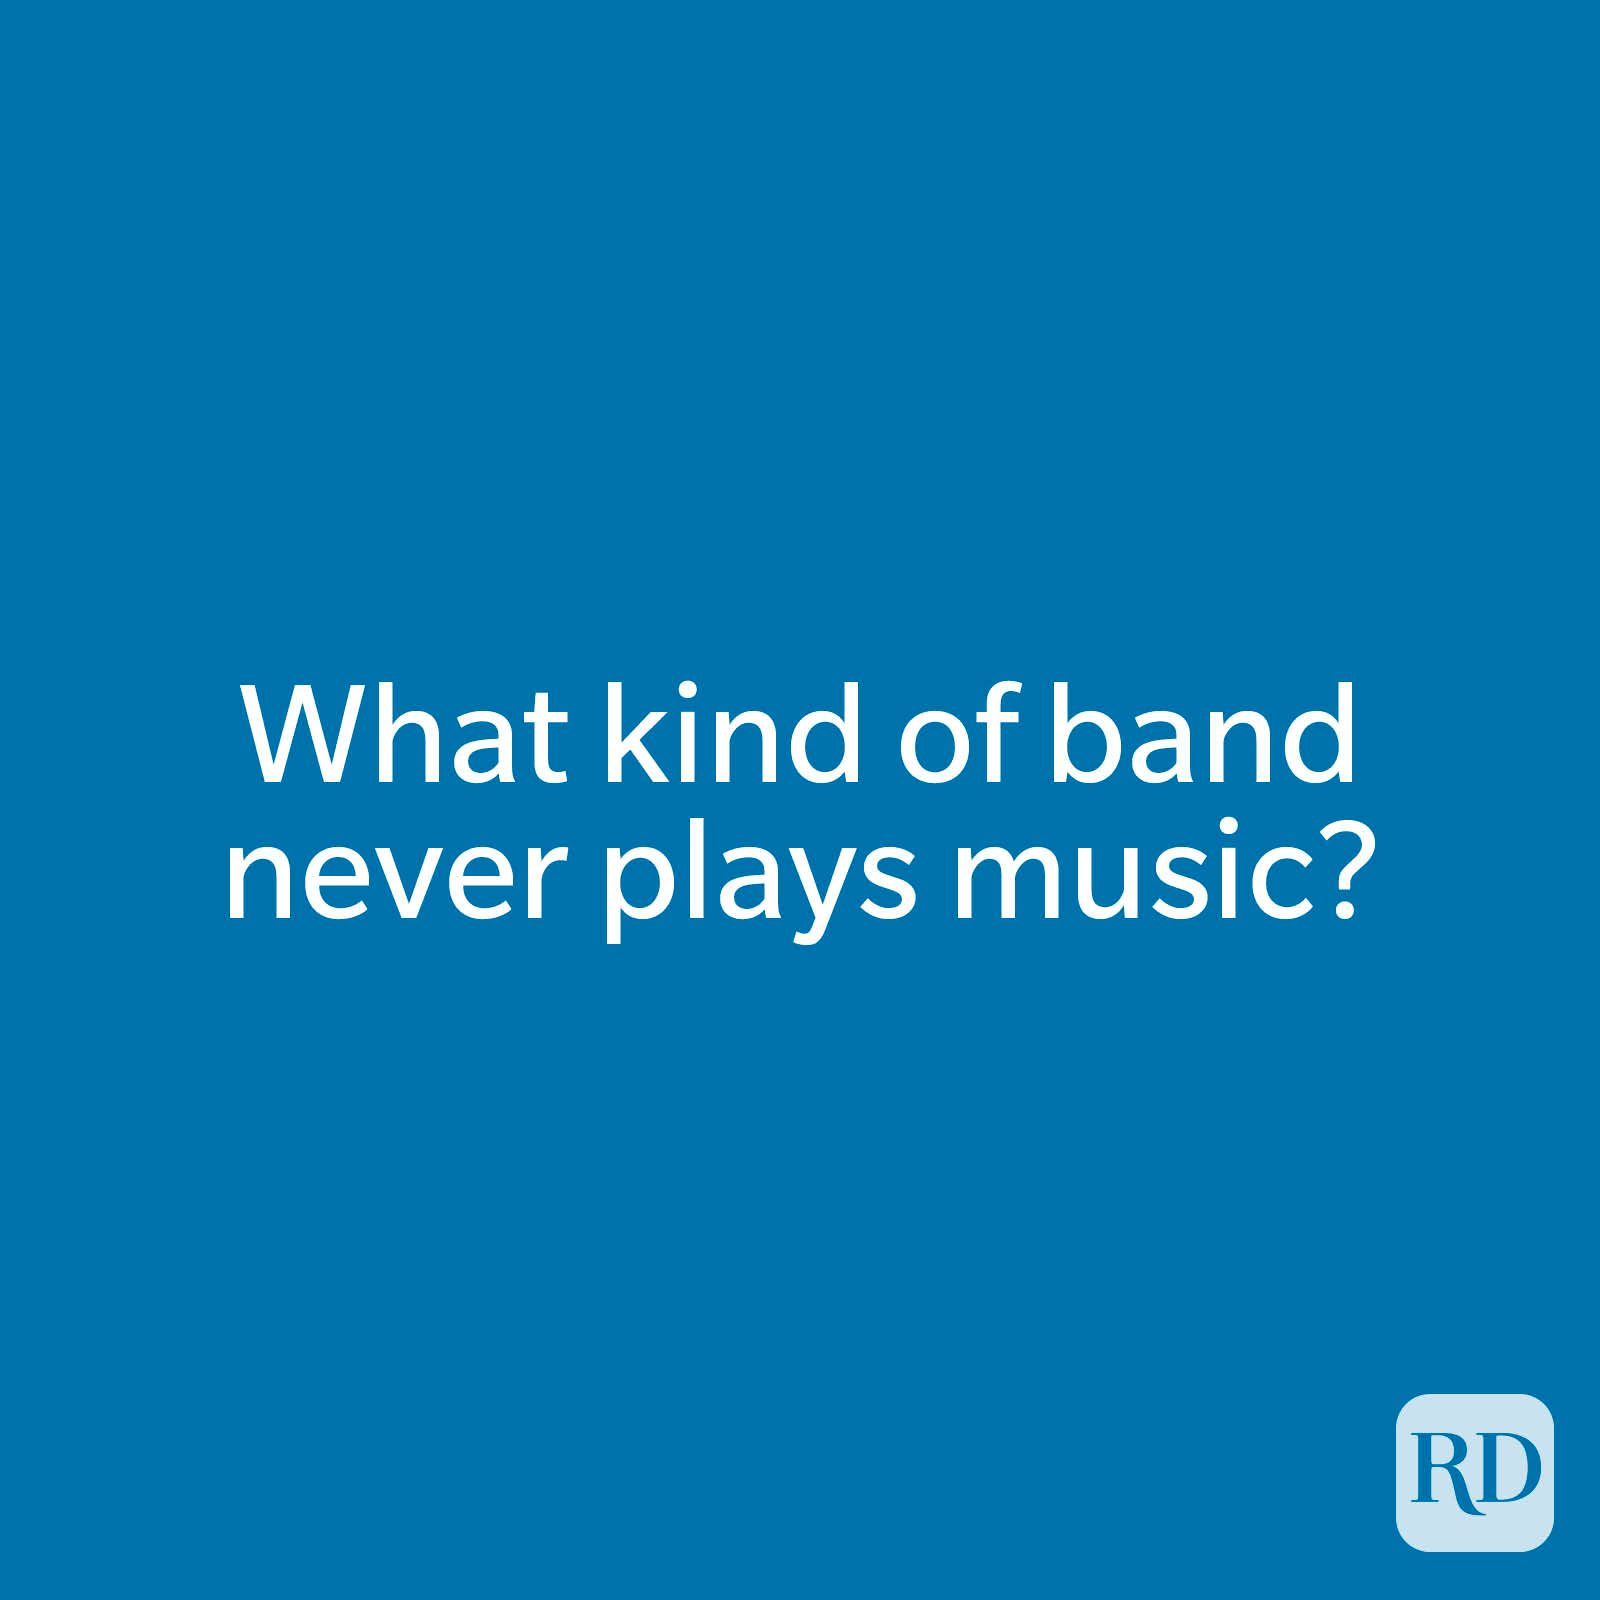 What kind of band never plays music?